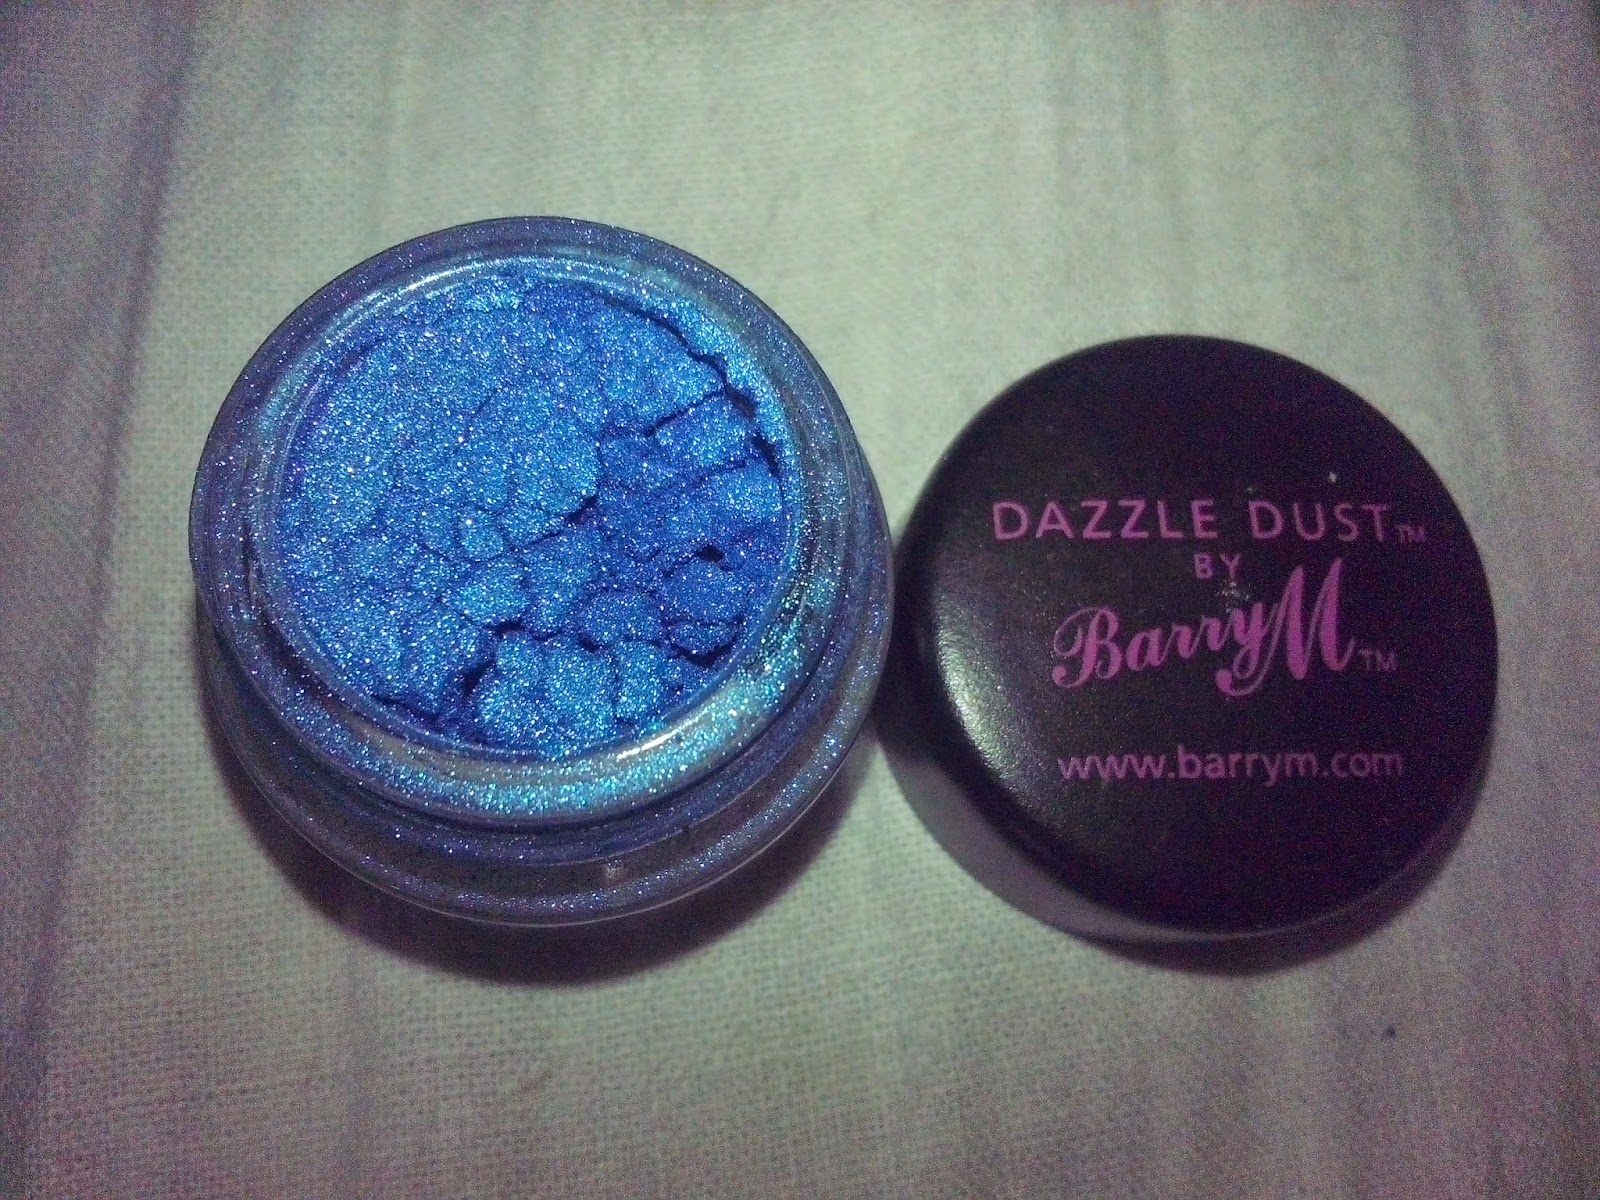 barry-m-dazzle-dust-electric-blue